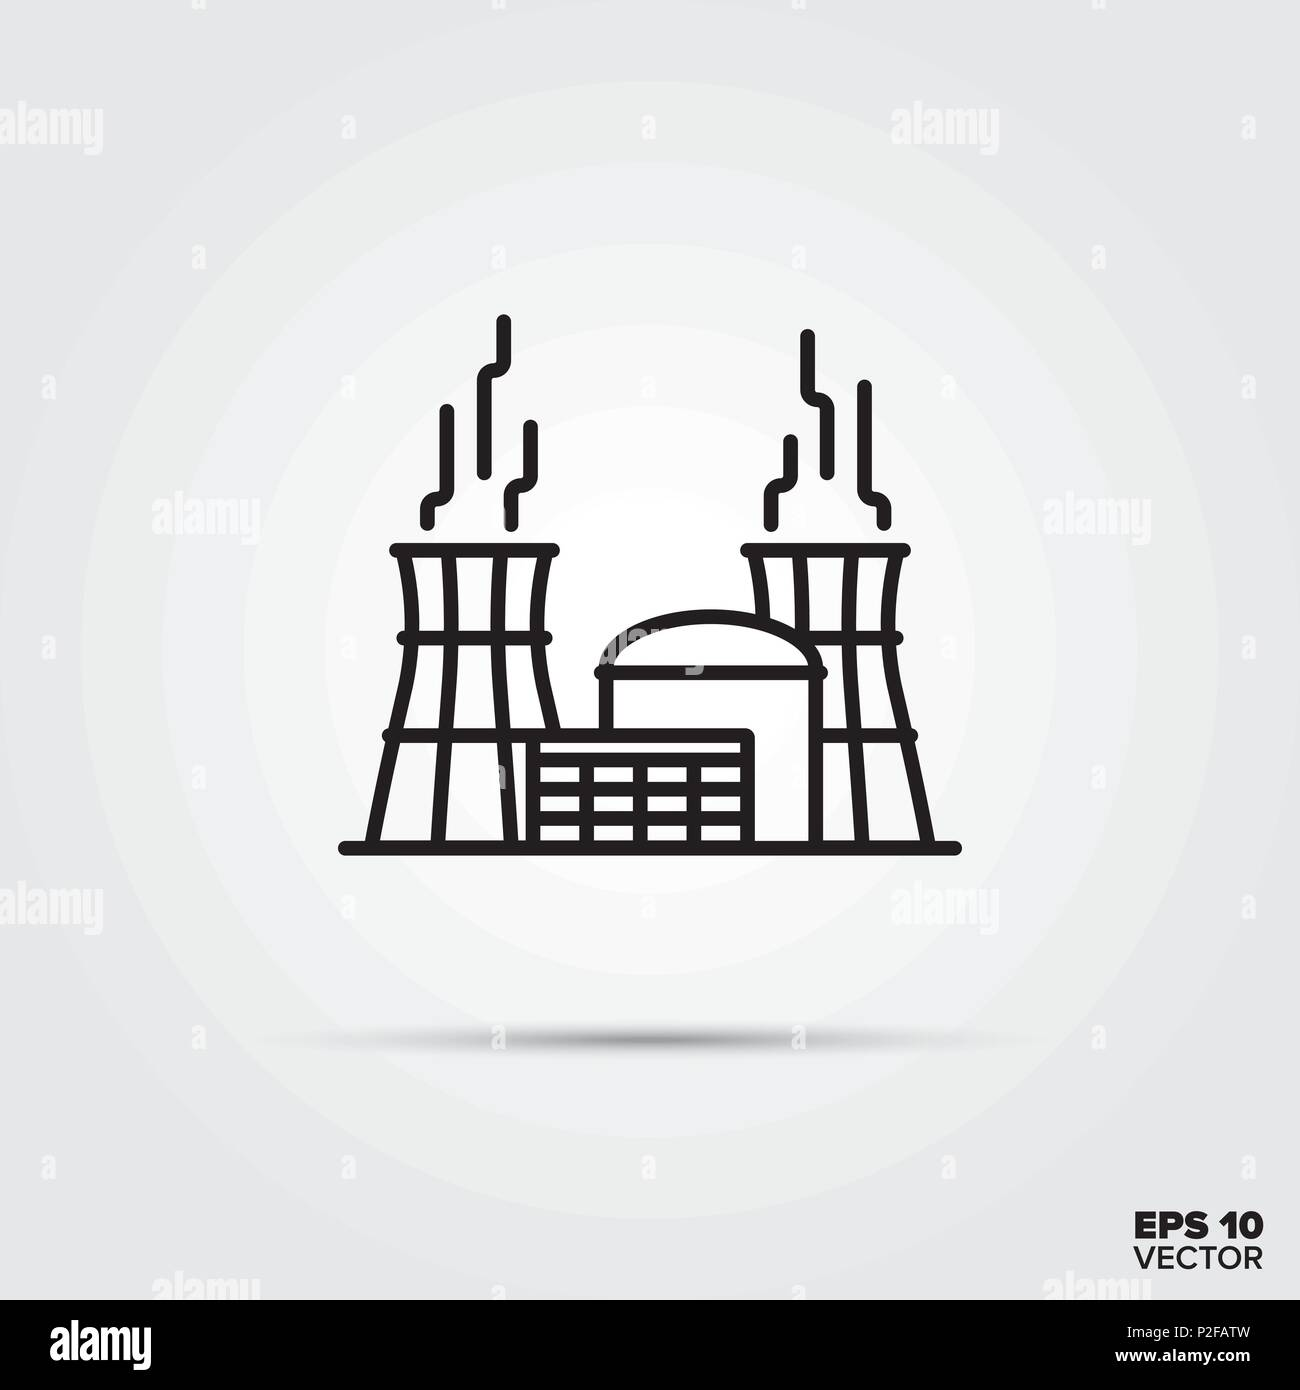 Nuclear power plant line icon vector. Industry and energy symbol. - Stock Image